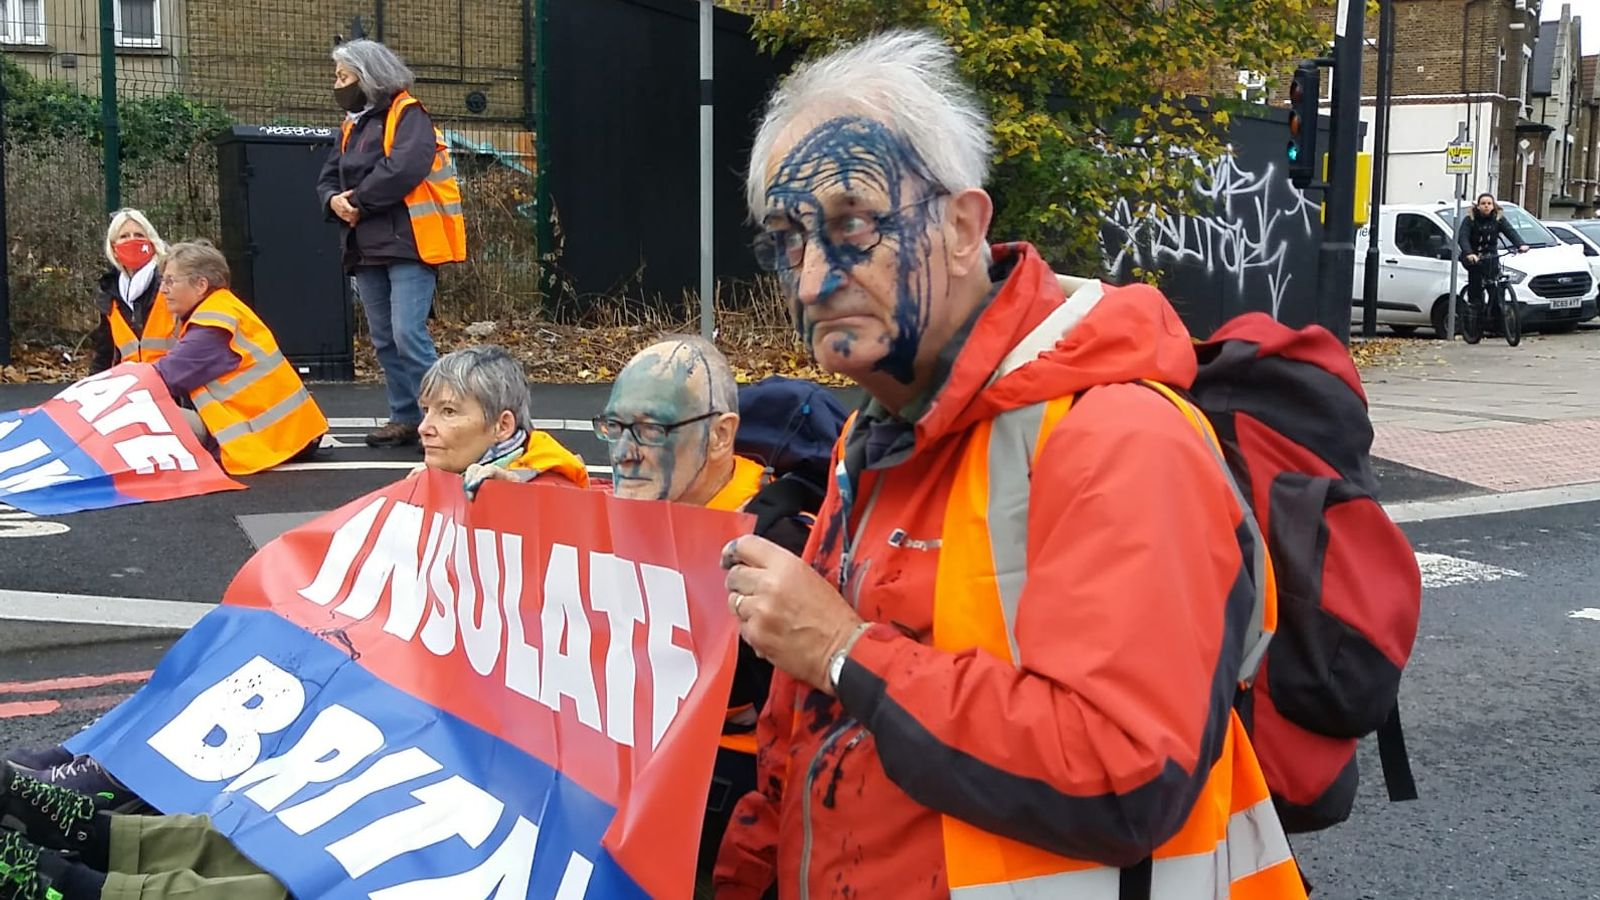 Insulate Britain protesters have ink thrown on them as they block roads in Dartford and west London